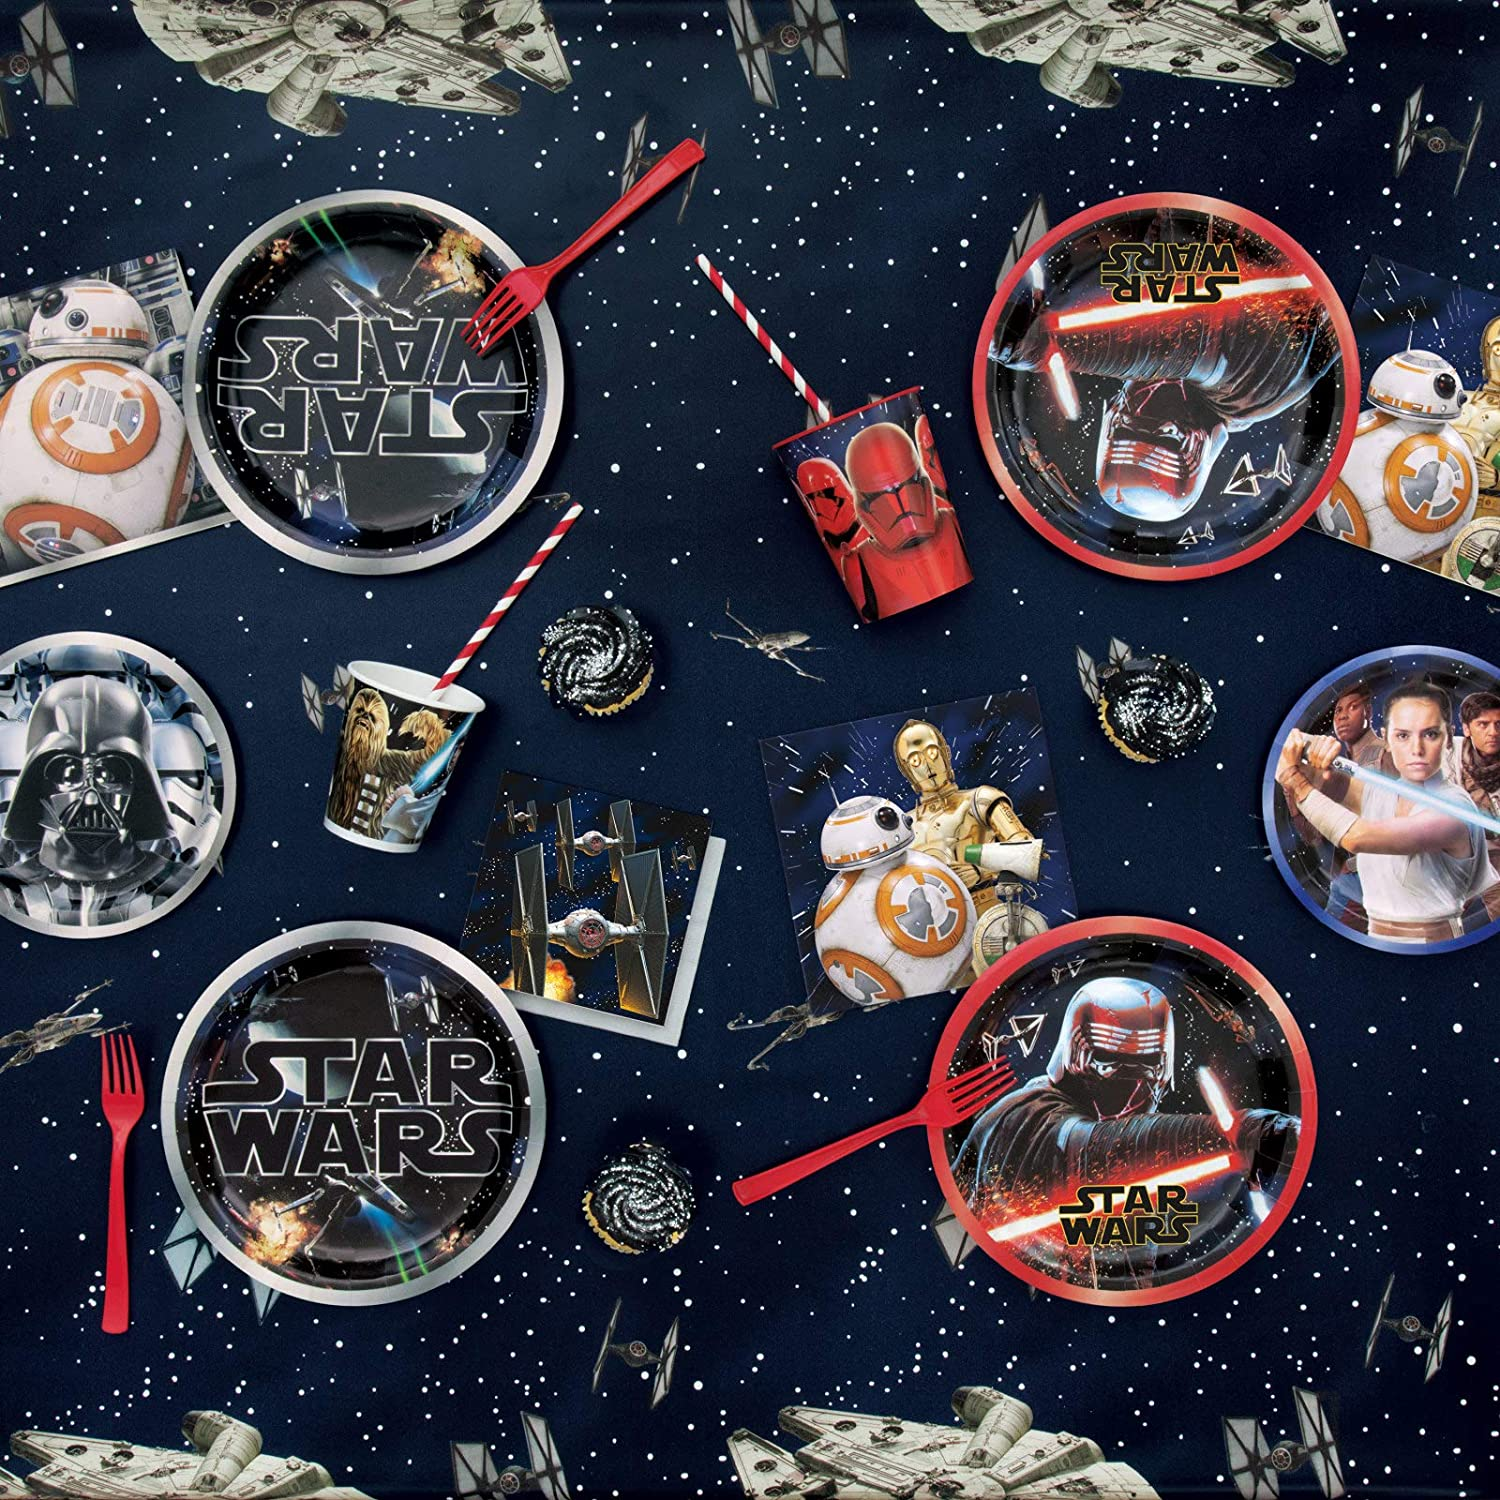 Star Wars Party Supplies Classic Star Wars Paper Dessert Plates and Beverage Napkins Serves 16